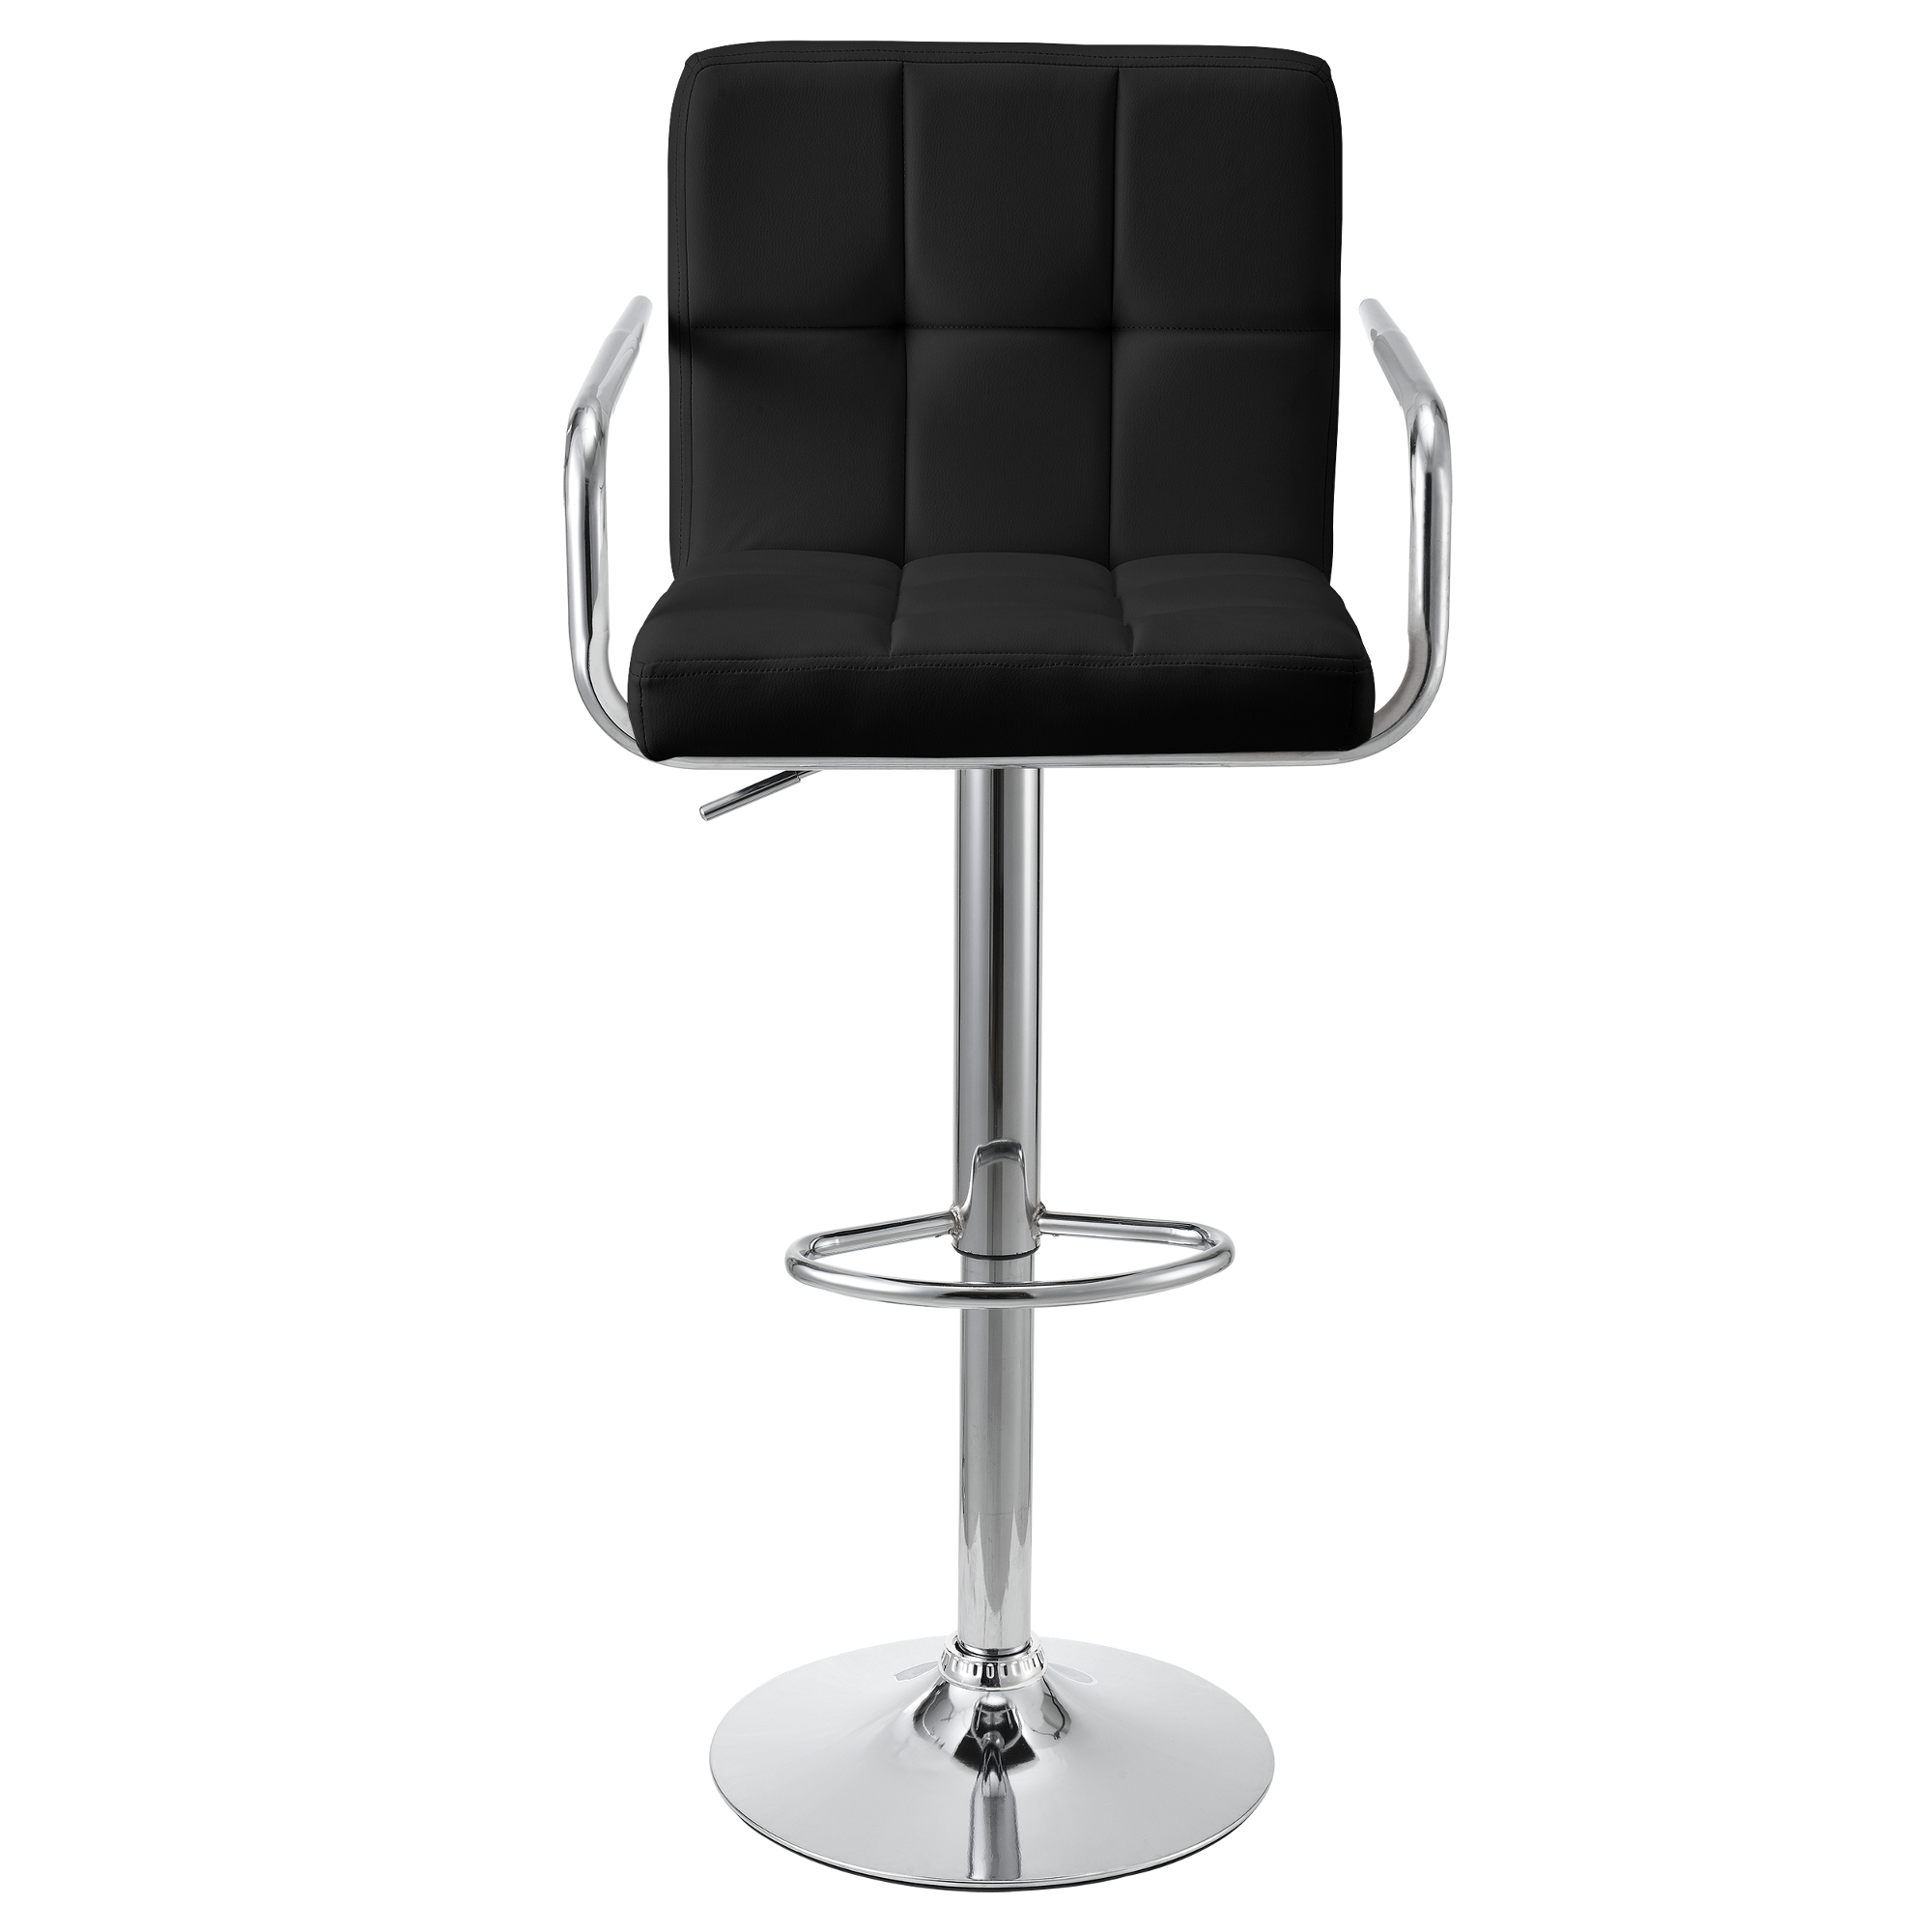 tabouret de bar noir 2er set avec dossier comptoir ebay. Black Bedroom Furniture Sets. Home Design Ideas